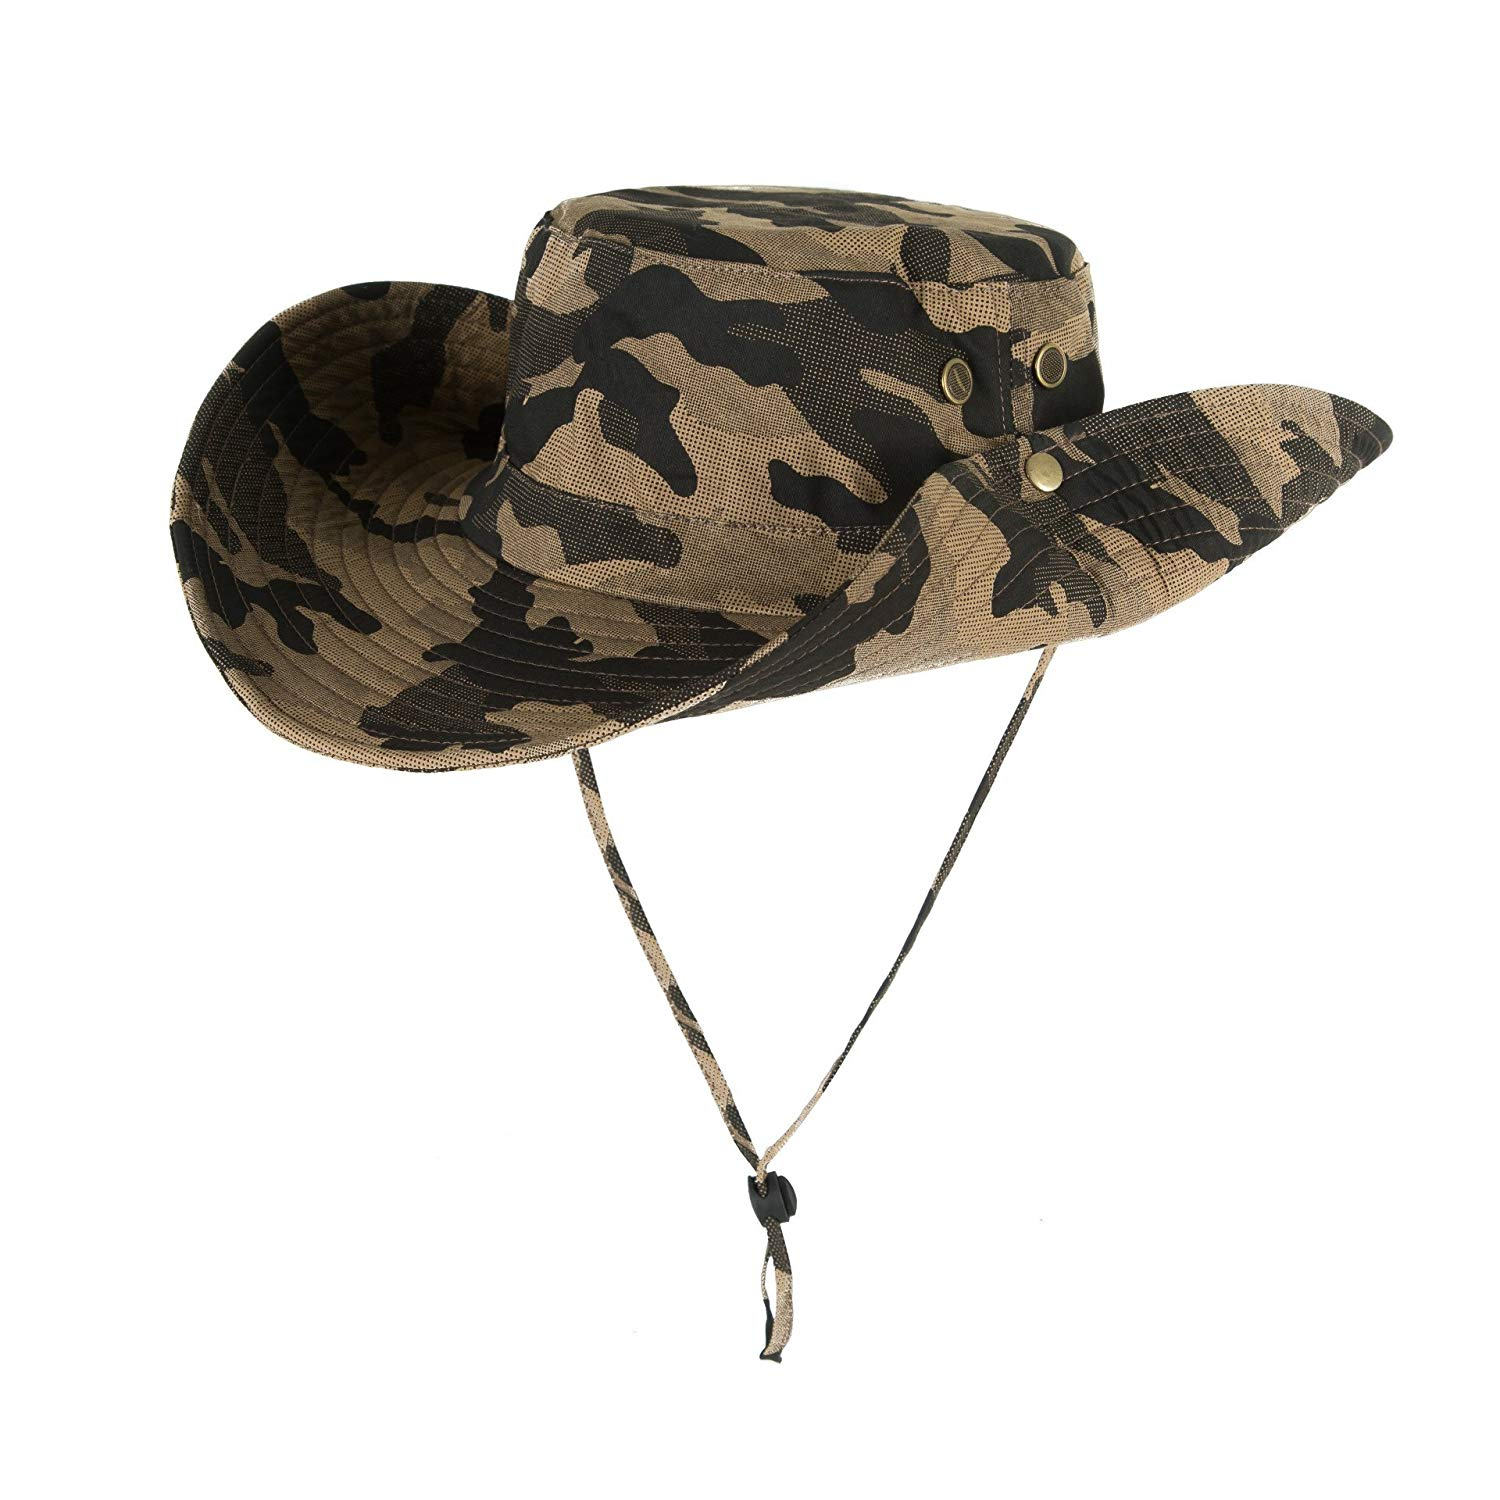 2fc7611ebda Get Quotations · Boonie Safari Sun Hat for Men   Women - UPF 50 Sun  Protection - Wide Brim